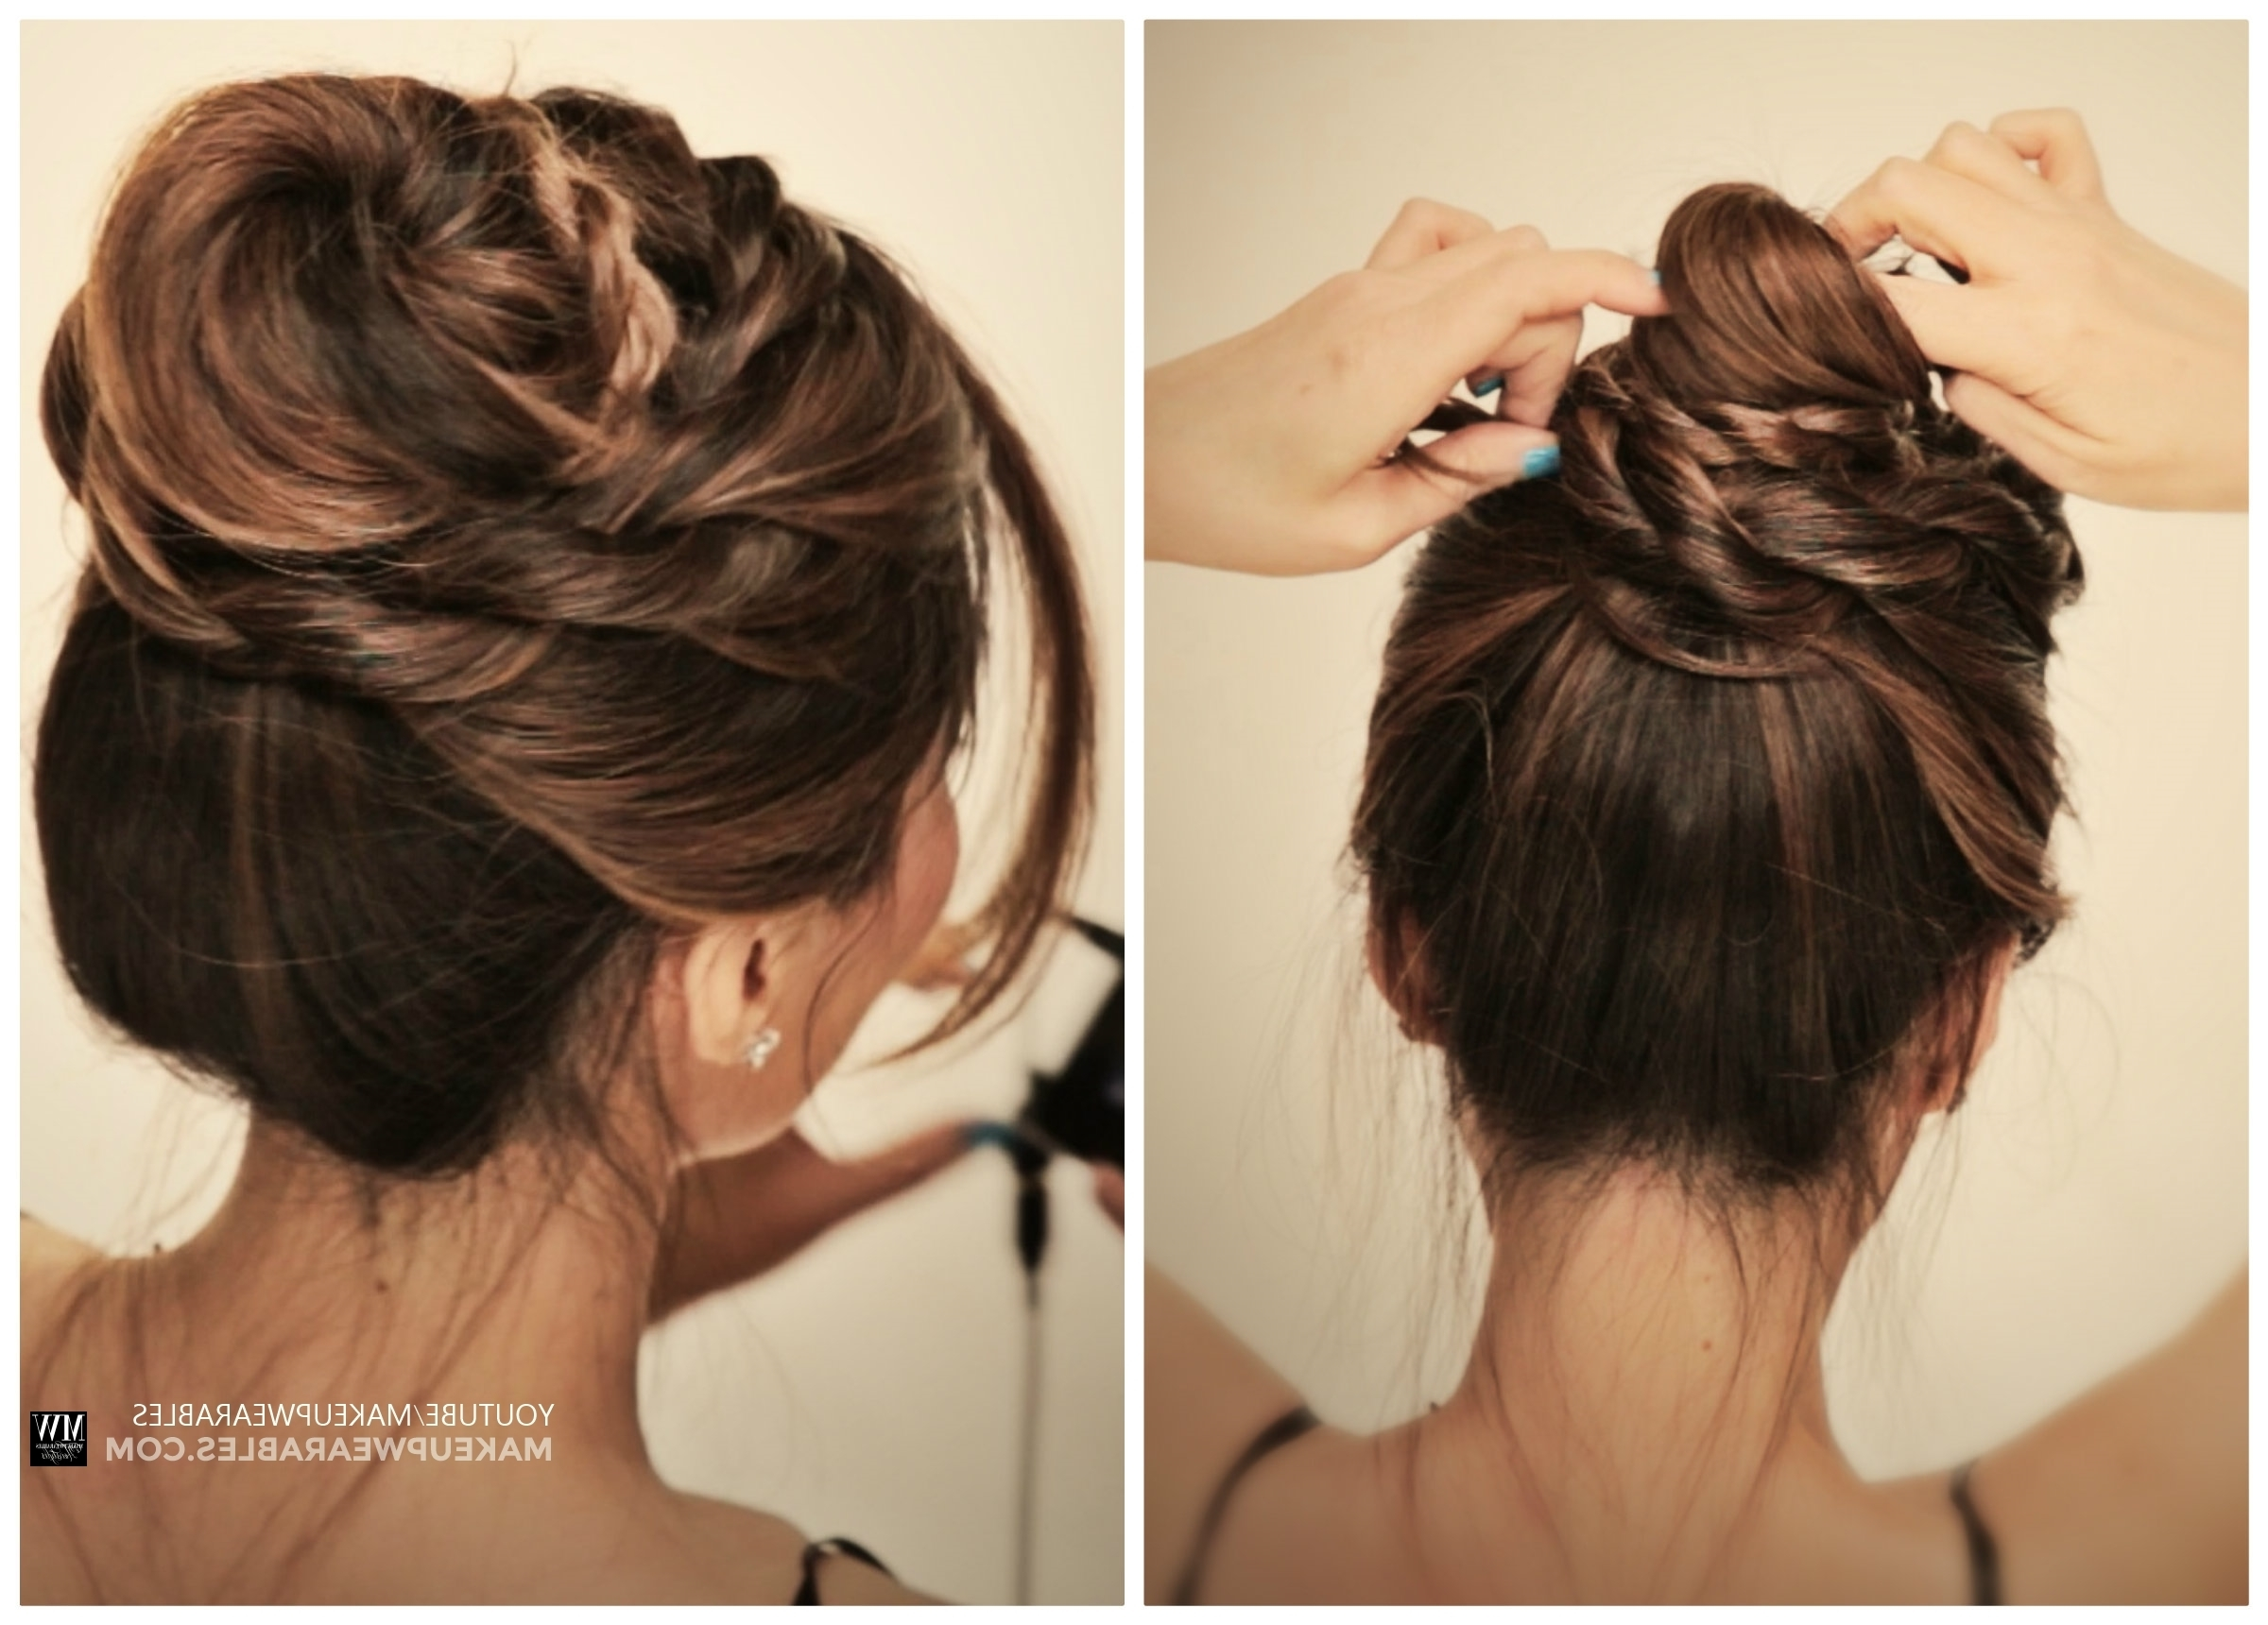 2017 Messy Bun Braided Hairstyles Pertaining To Cute Messy Bun Braids Ballerina Twisted Updo Hairstyle (View 3 of 15)